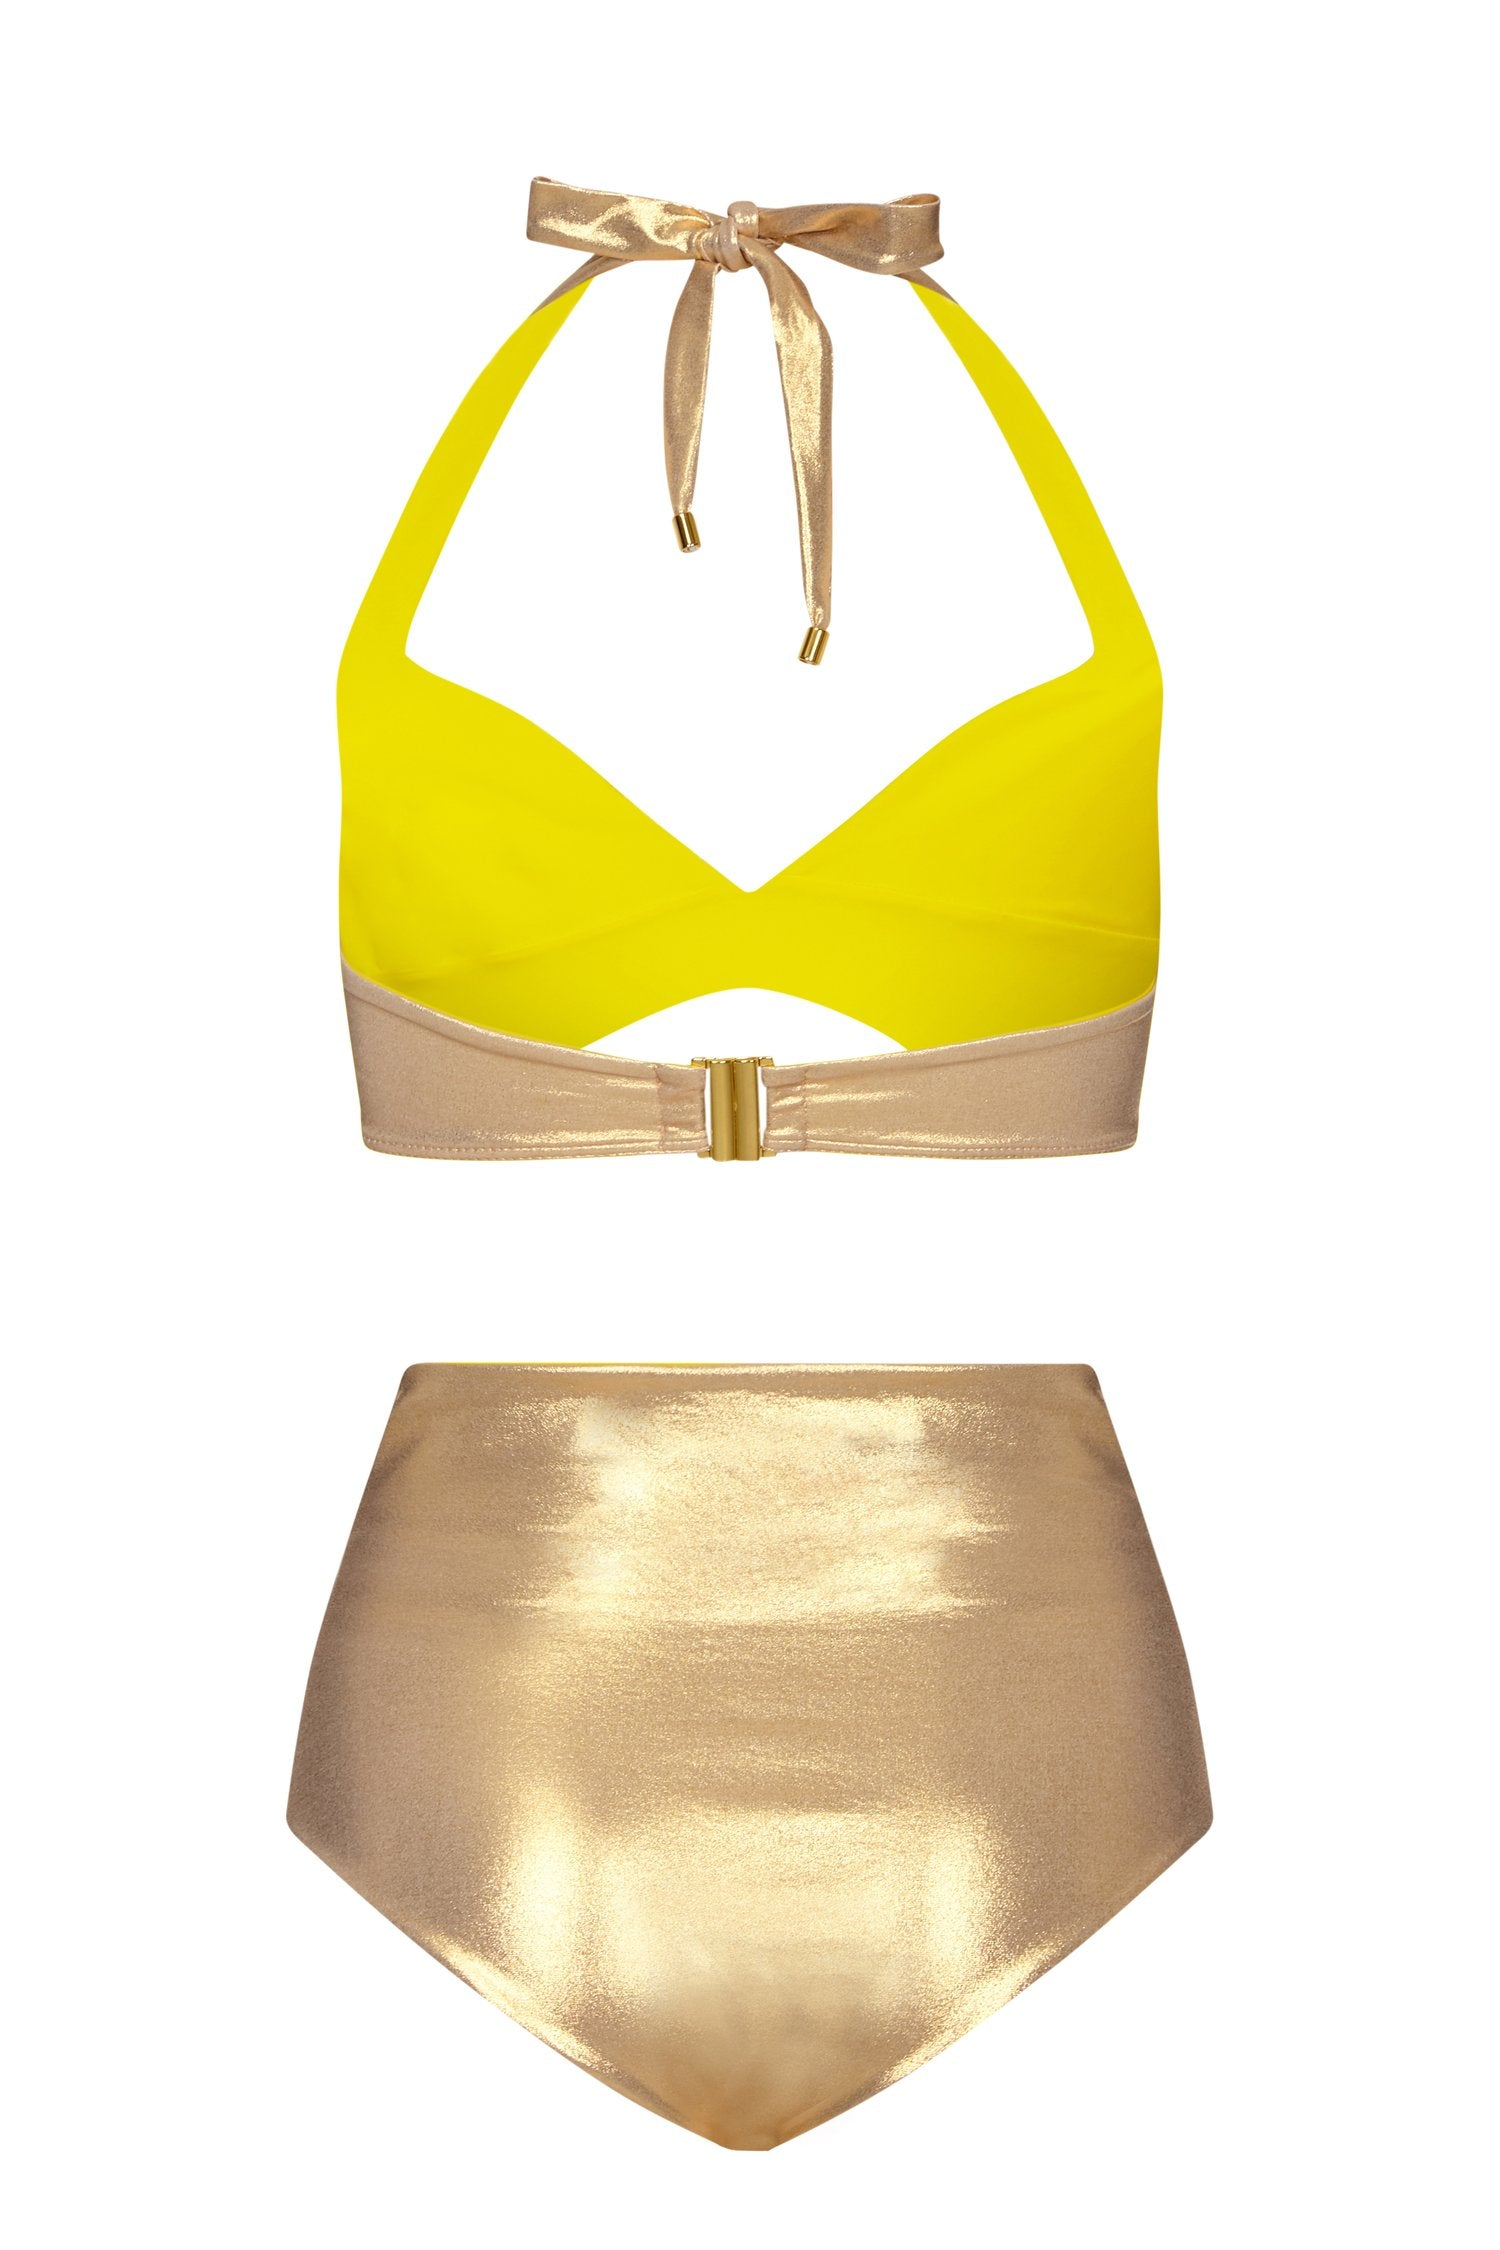 Joy Gold Bikini Back